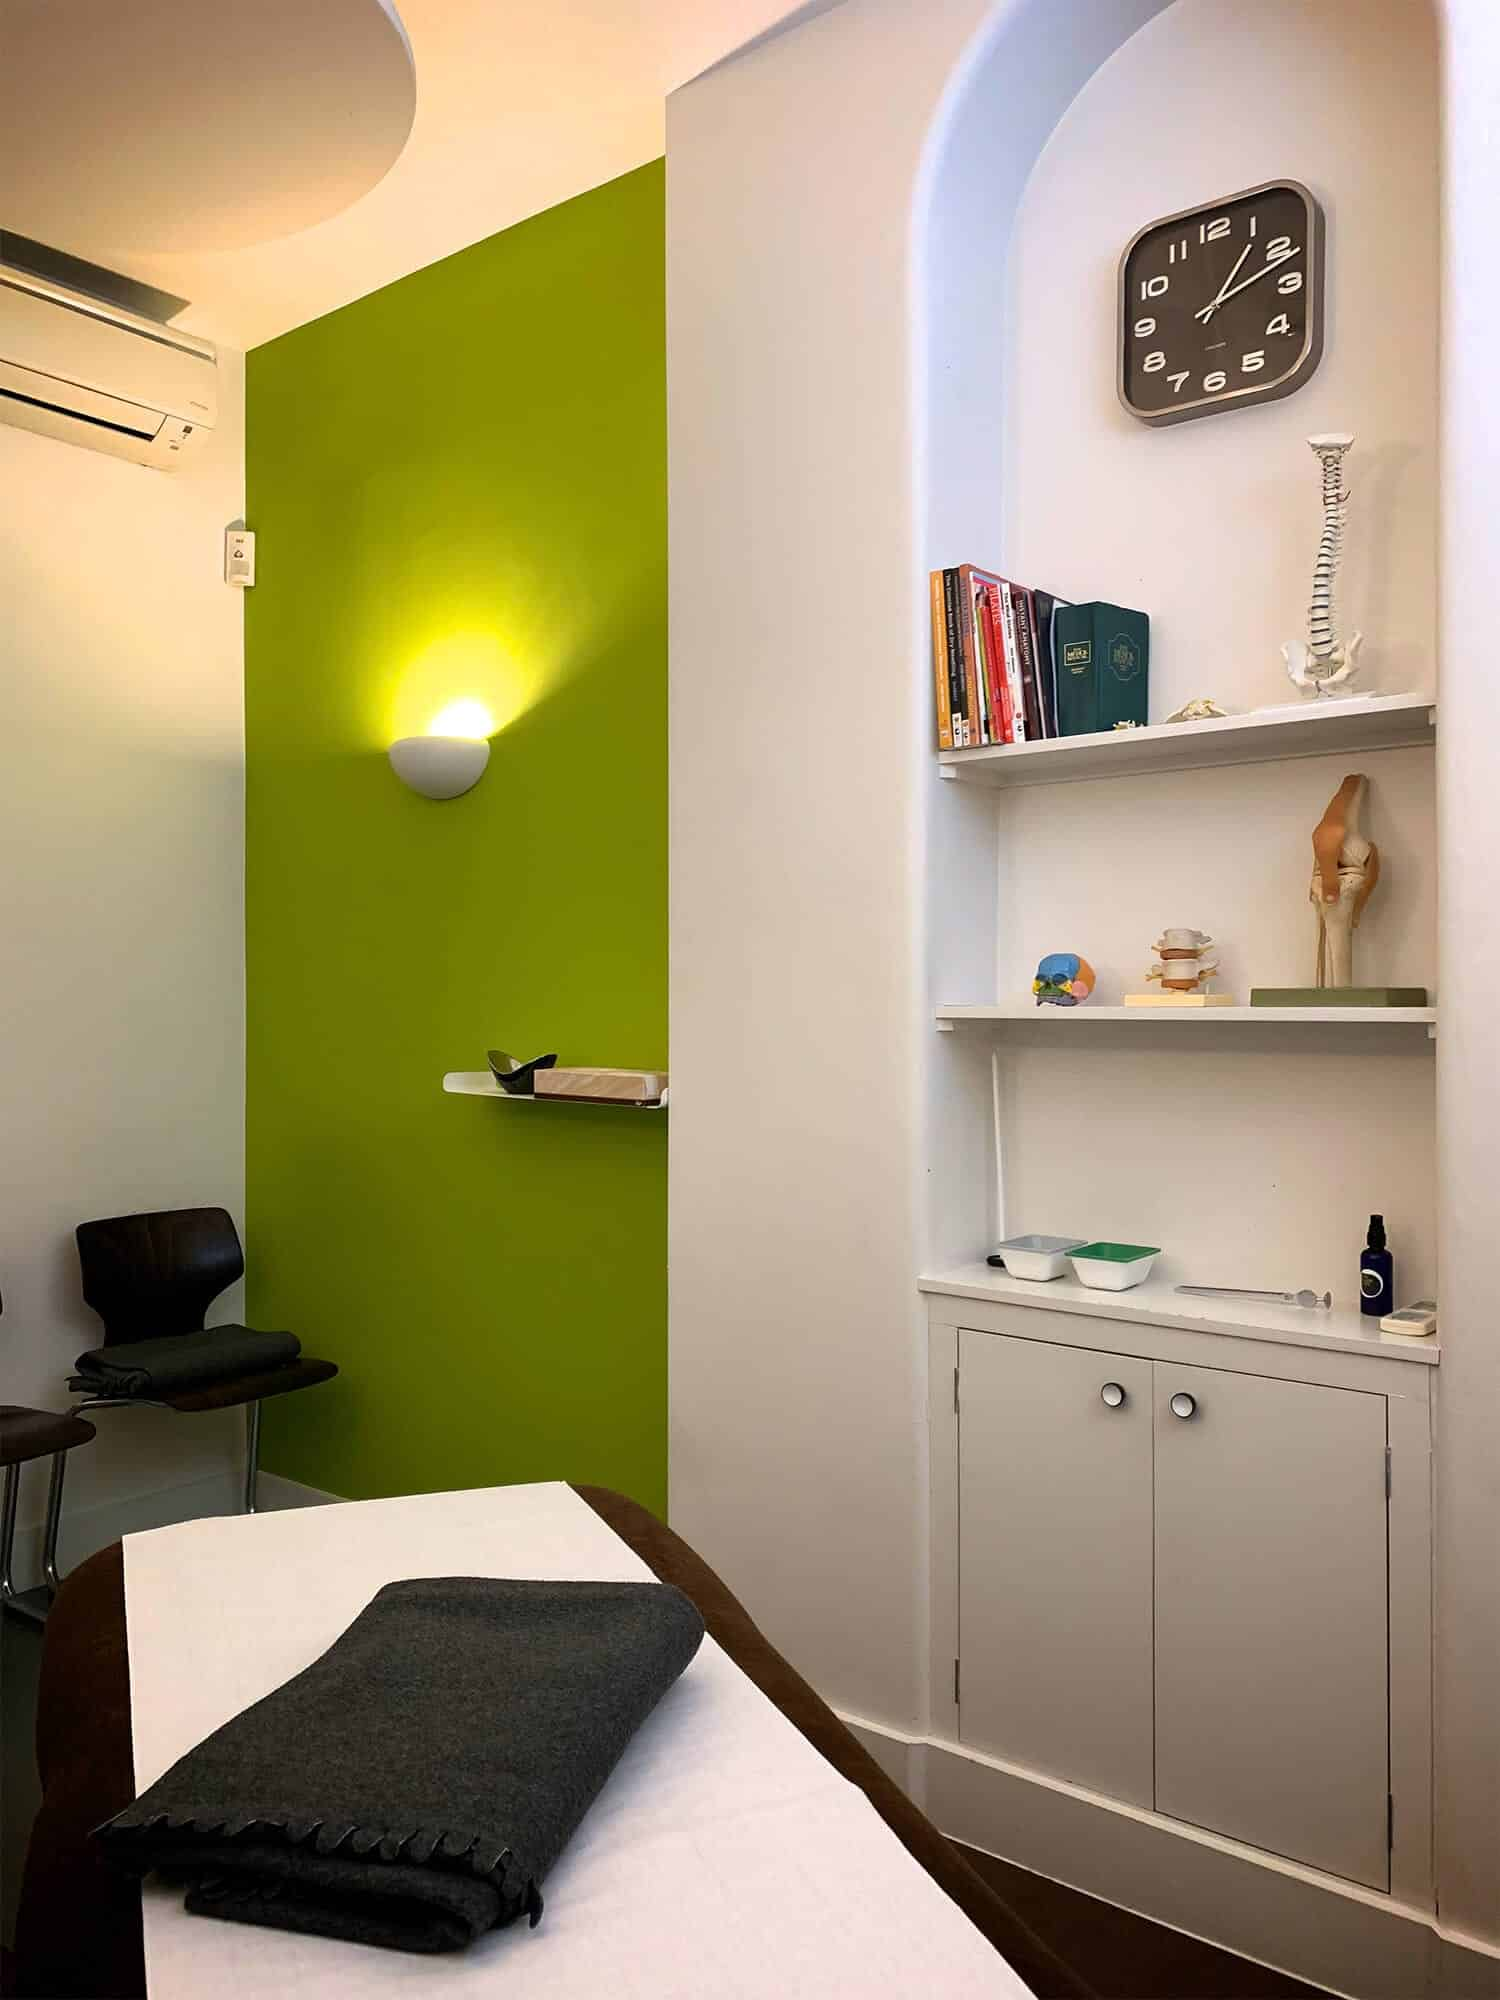 Room 1 our accessible therapy room to rent for Central and East London in Bethnal Green